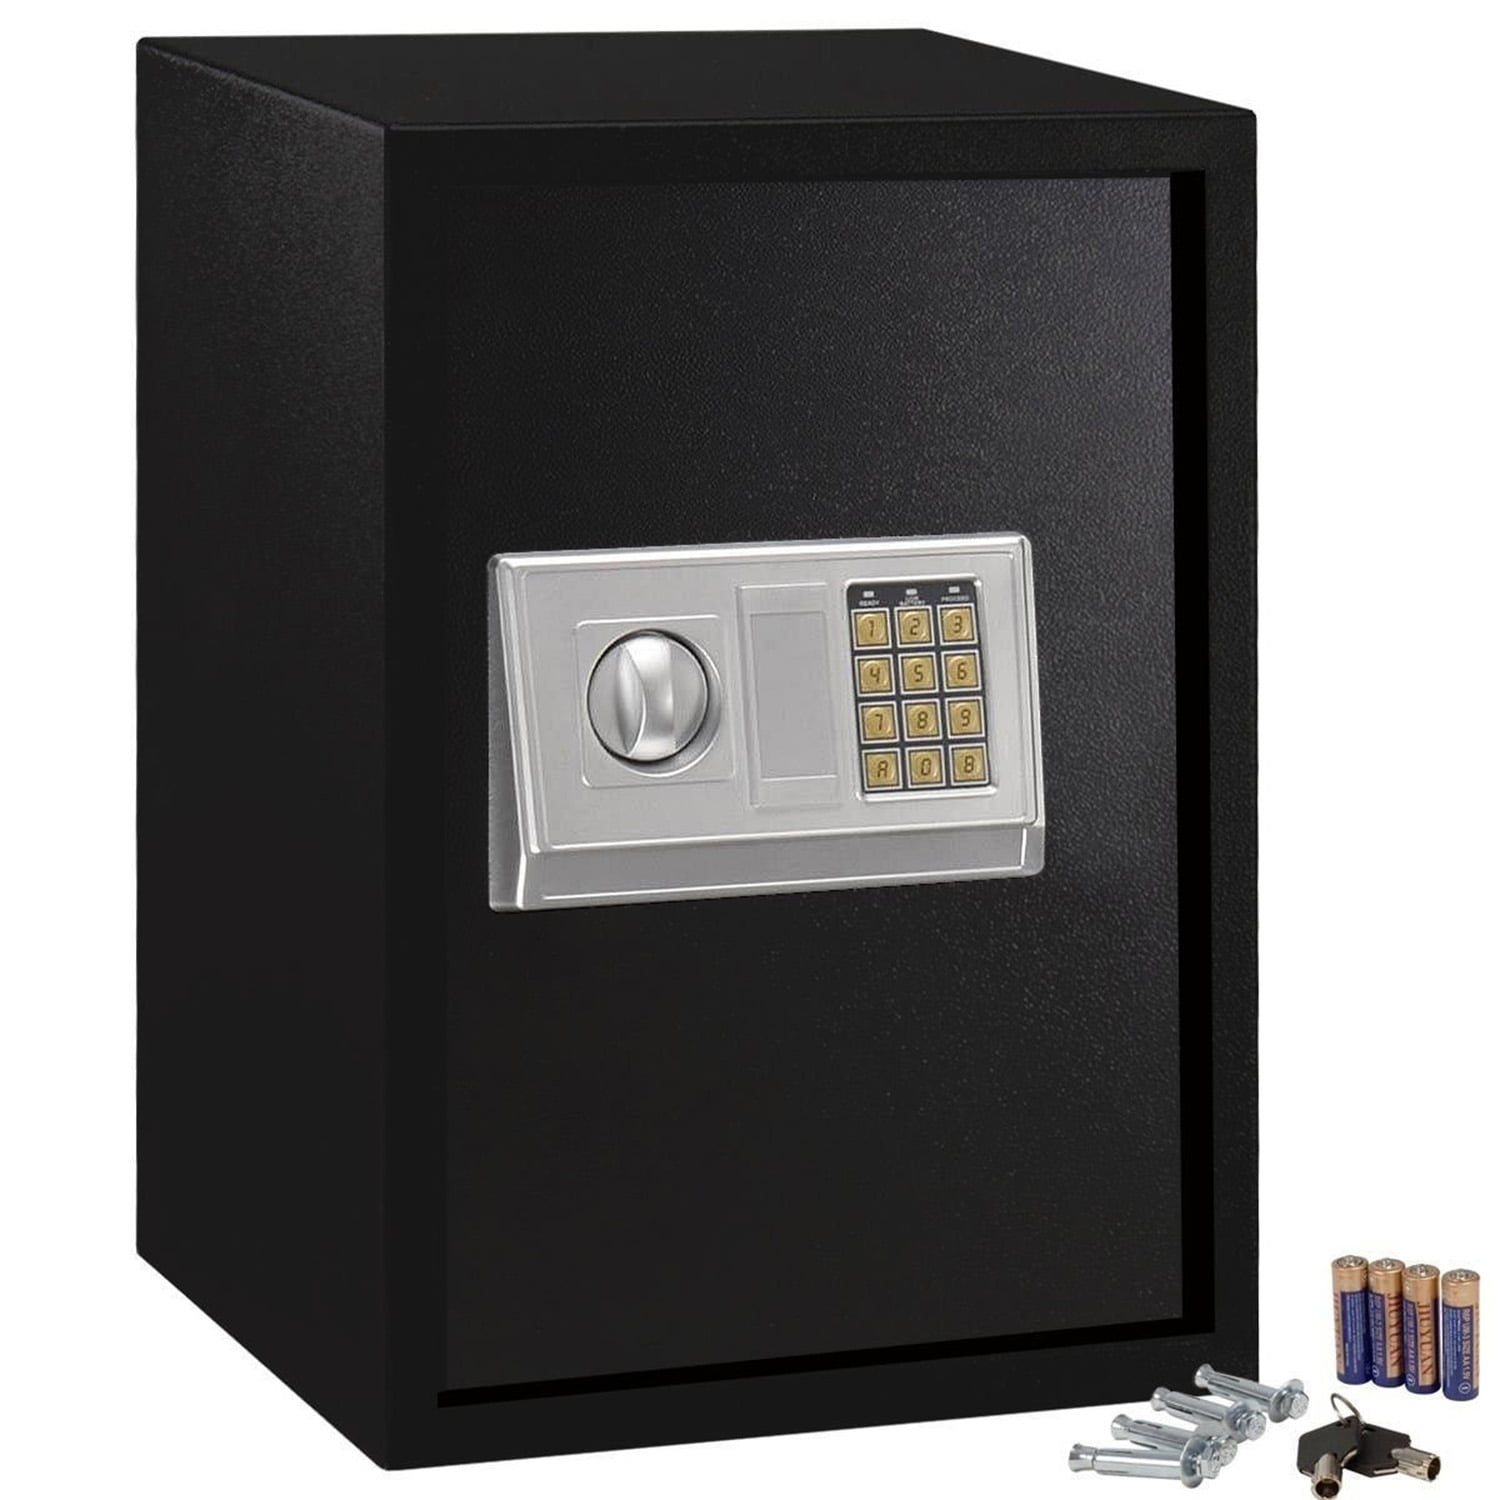 Costway Home Office Hotel Large Digital Electronic Keypad Lock Security Gun Safe Box by Costway